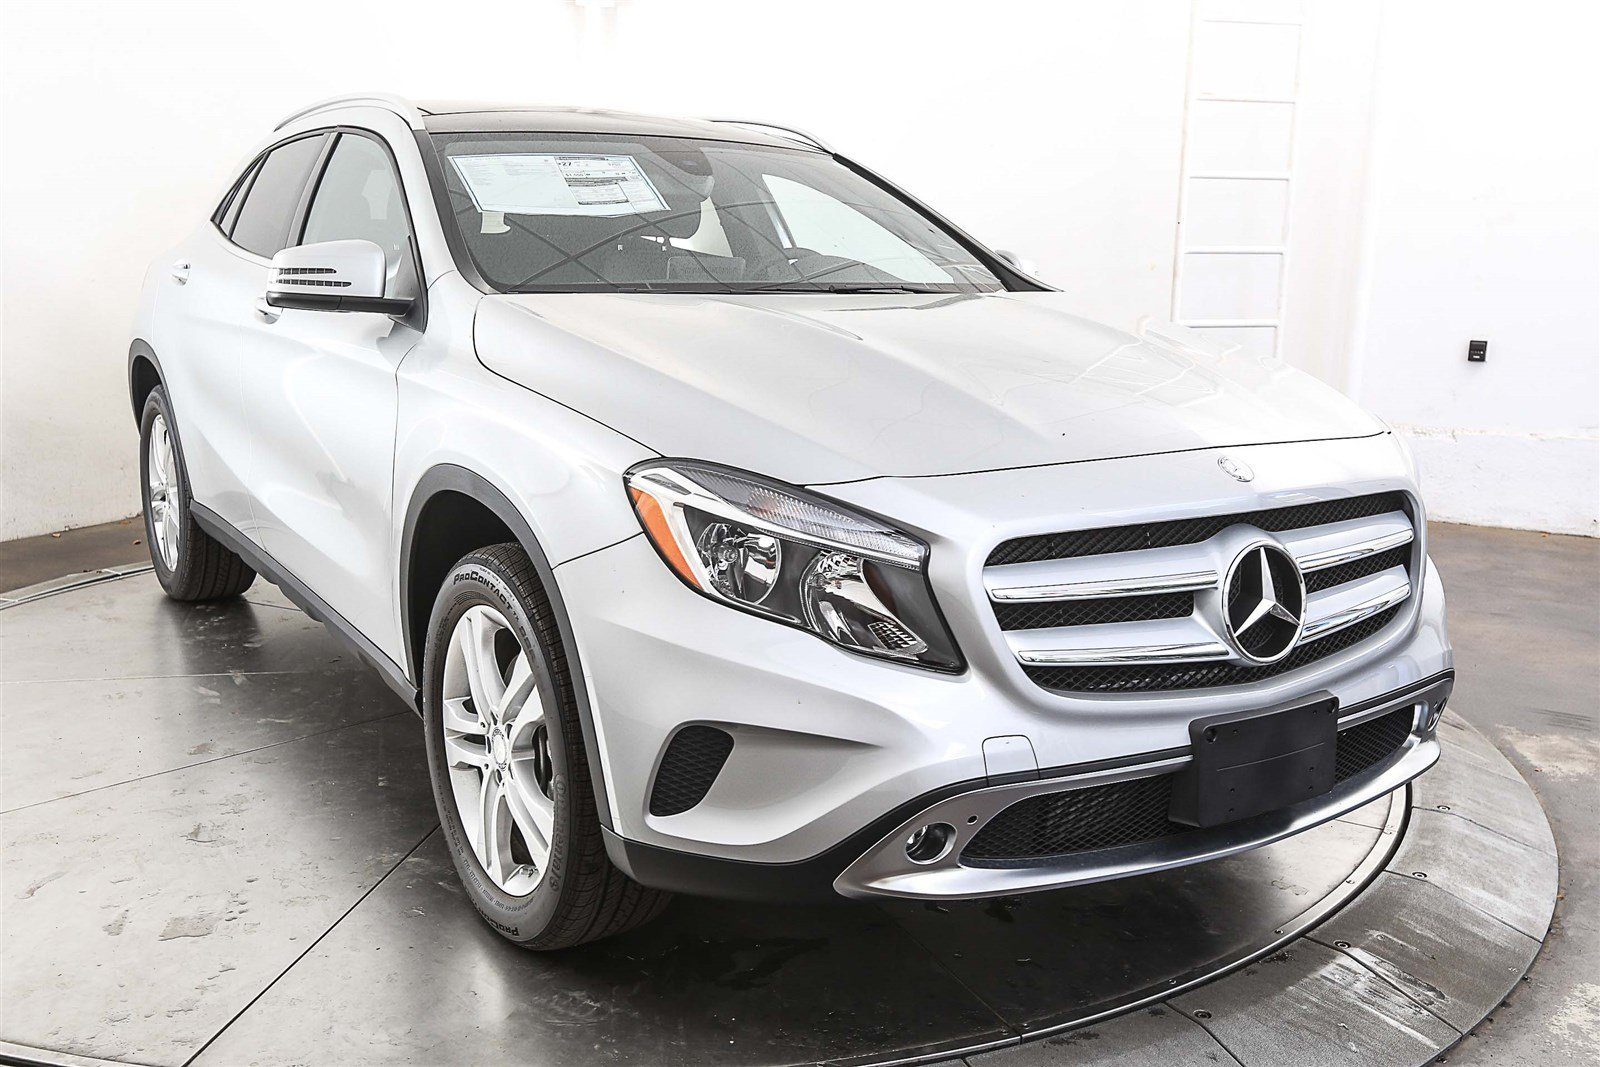 Pre owned 2017 mercedes benz gla gla 250 suv in austin for 2017 mercedes benz gla250 suv